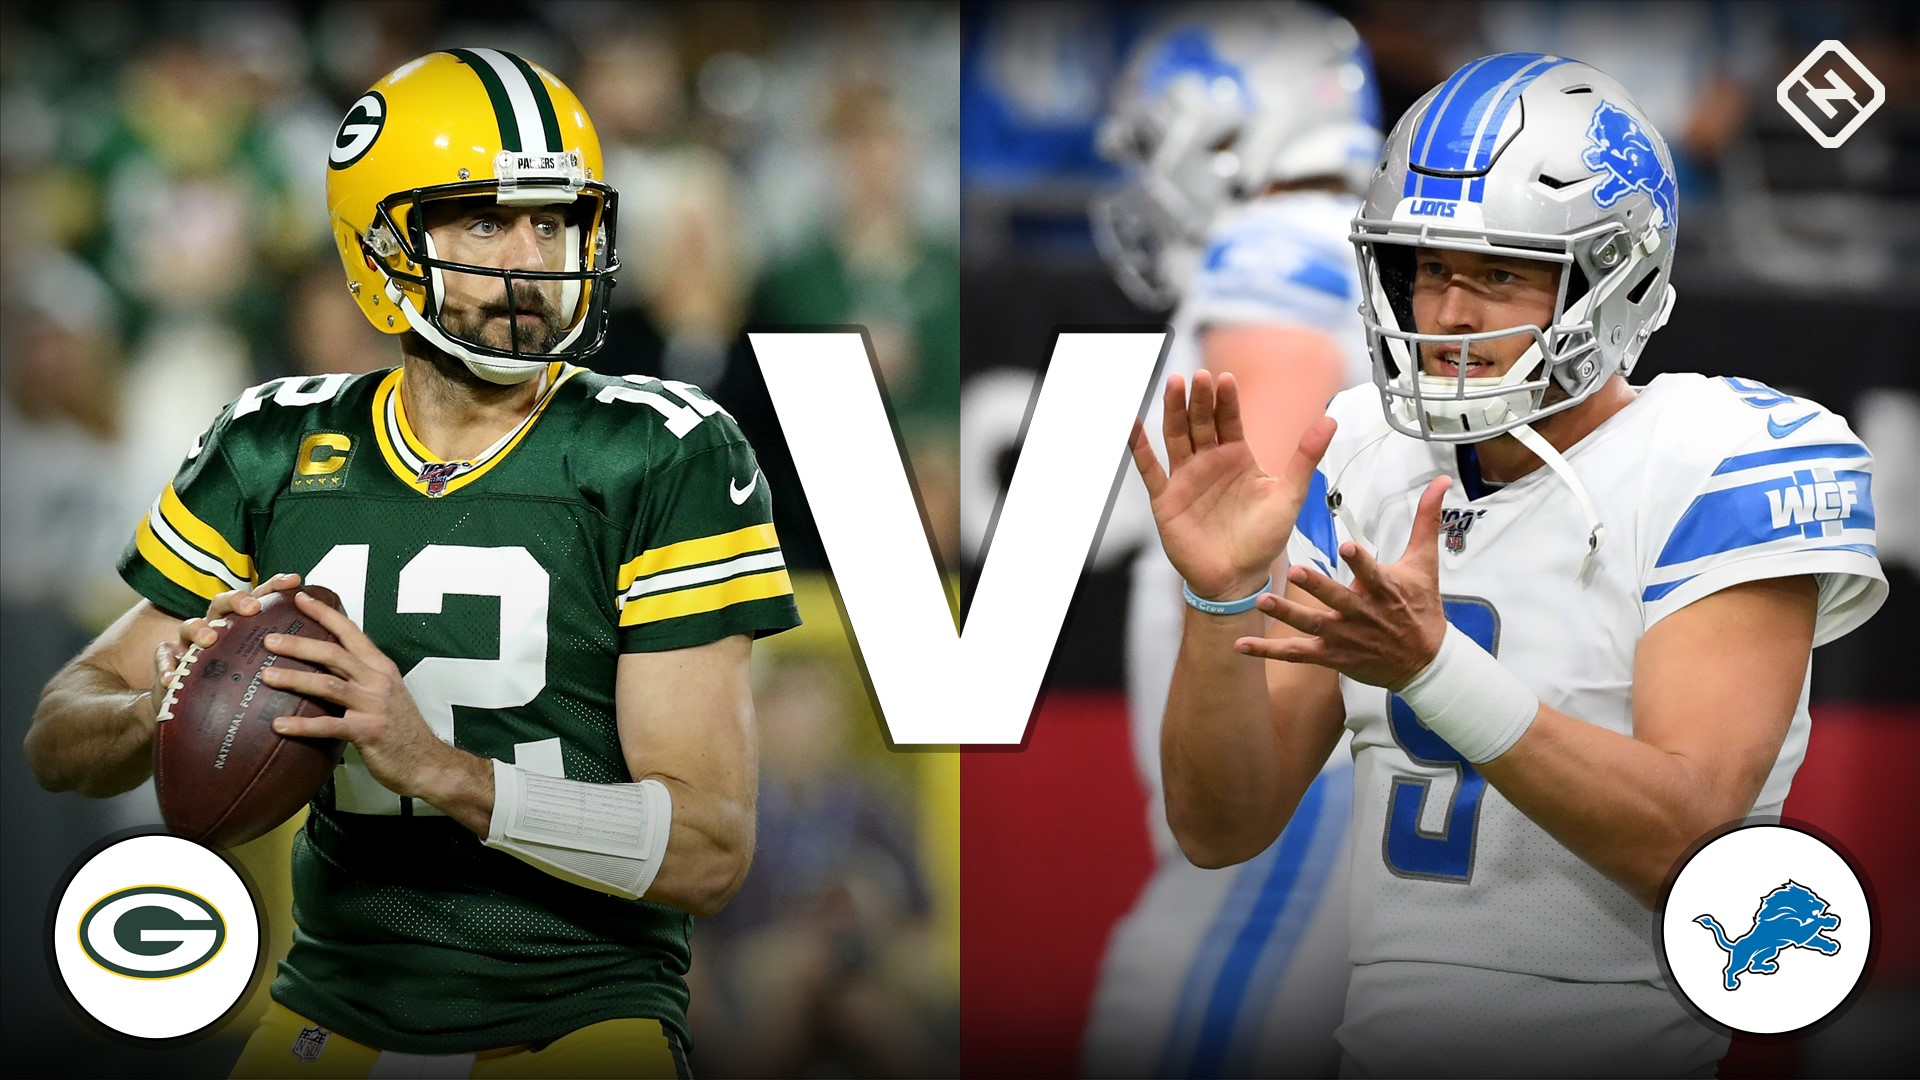 Lions Vs Packers Odds Prediction Betting Trends For Monday Night Football Sporting News